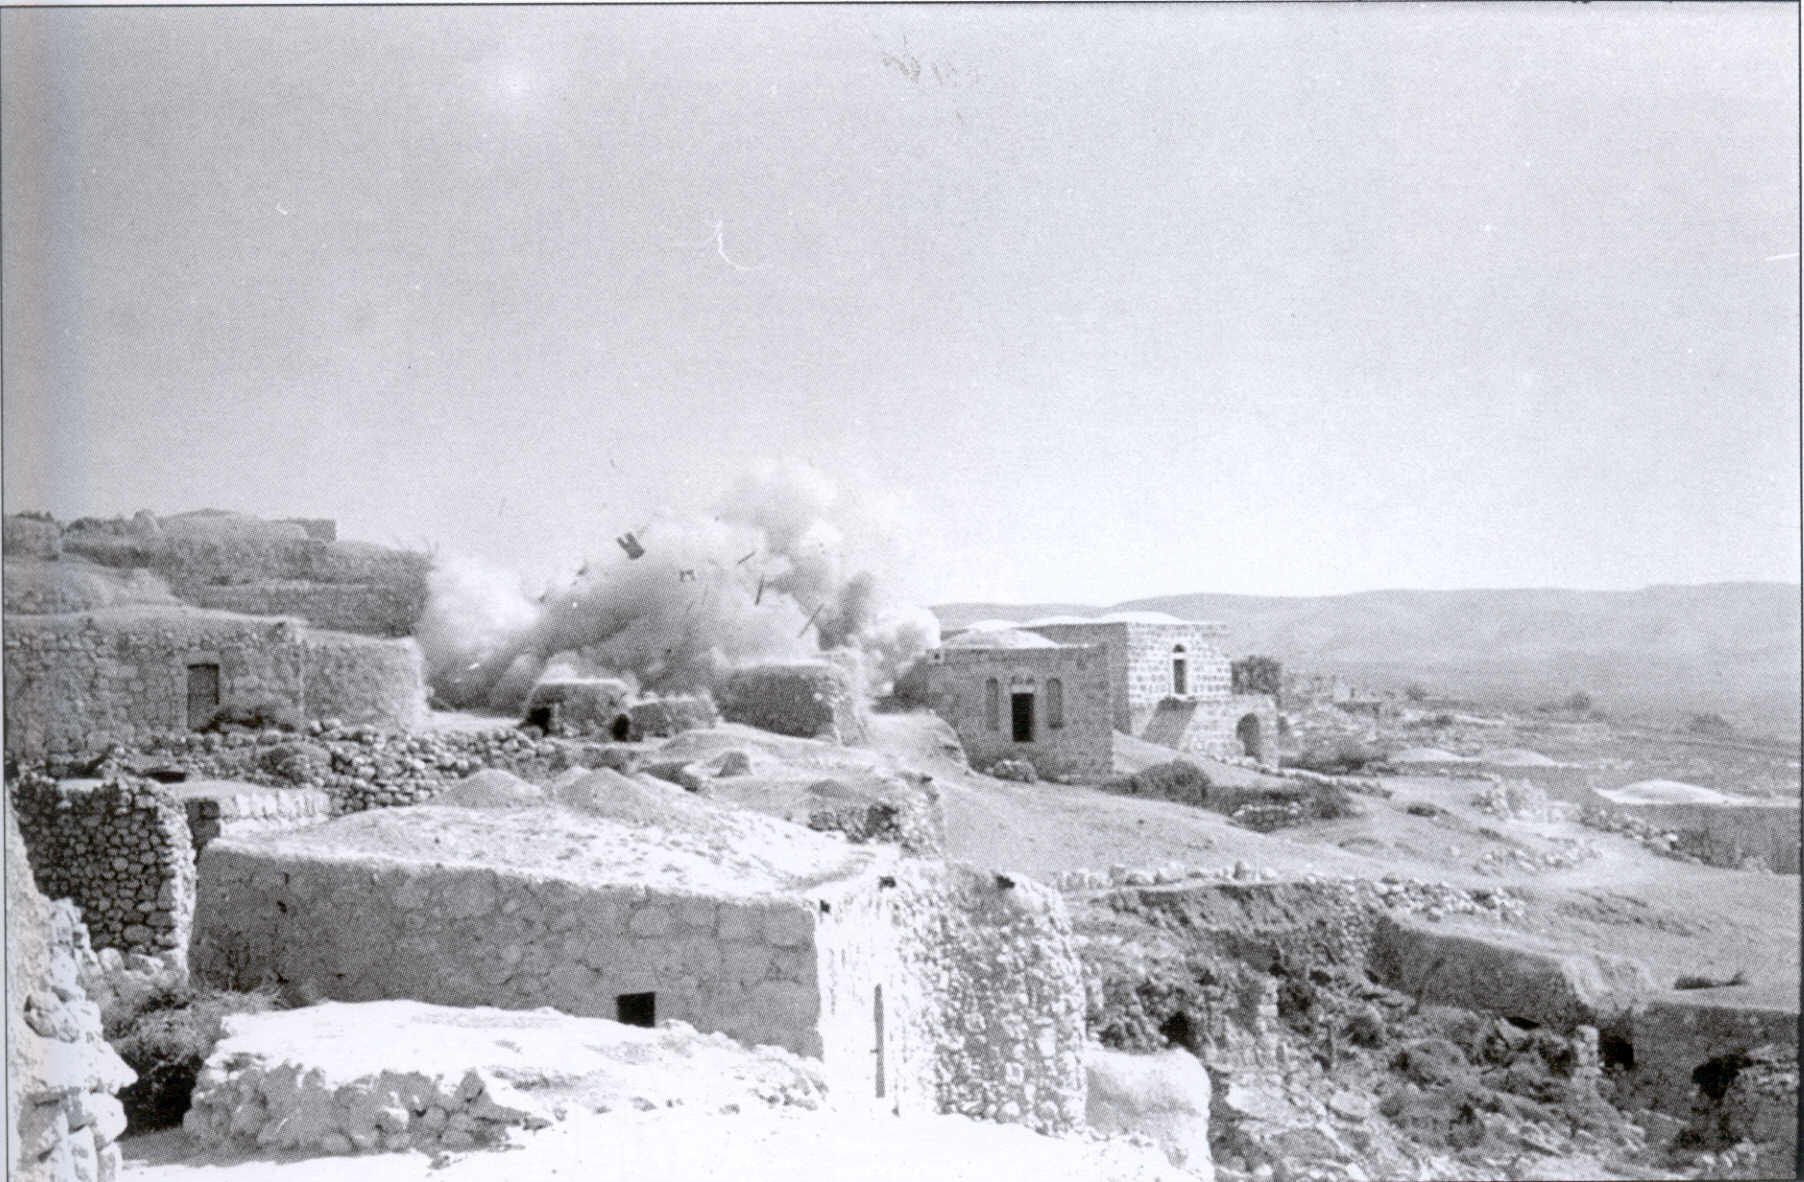 Bayt Nattif - بيت نتّيف : Rare picture for the village as Israelis are destroying it soon after occupation. 1949